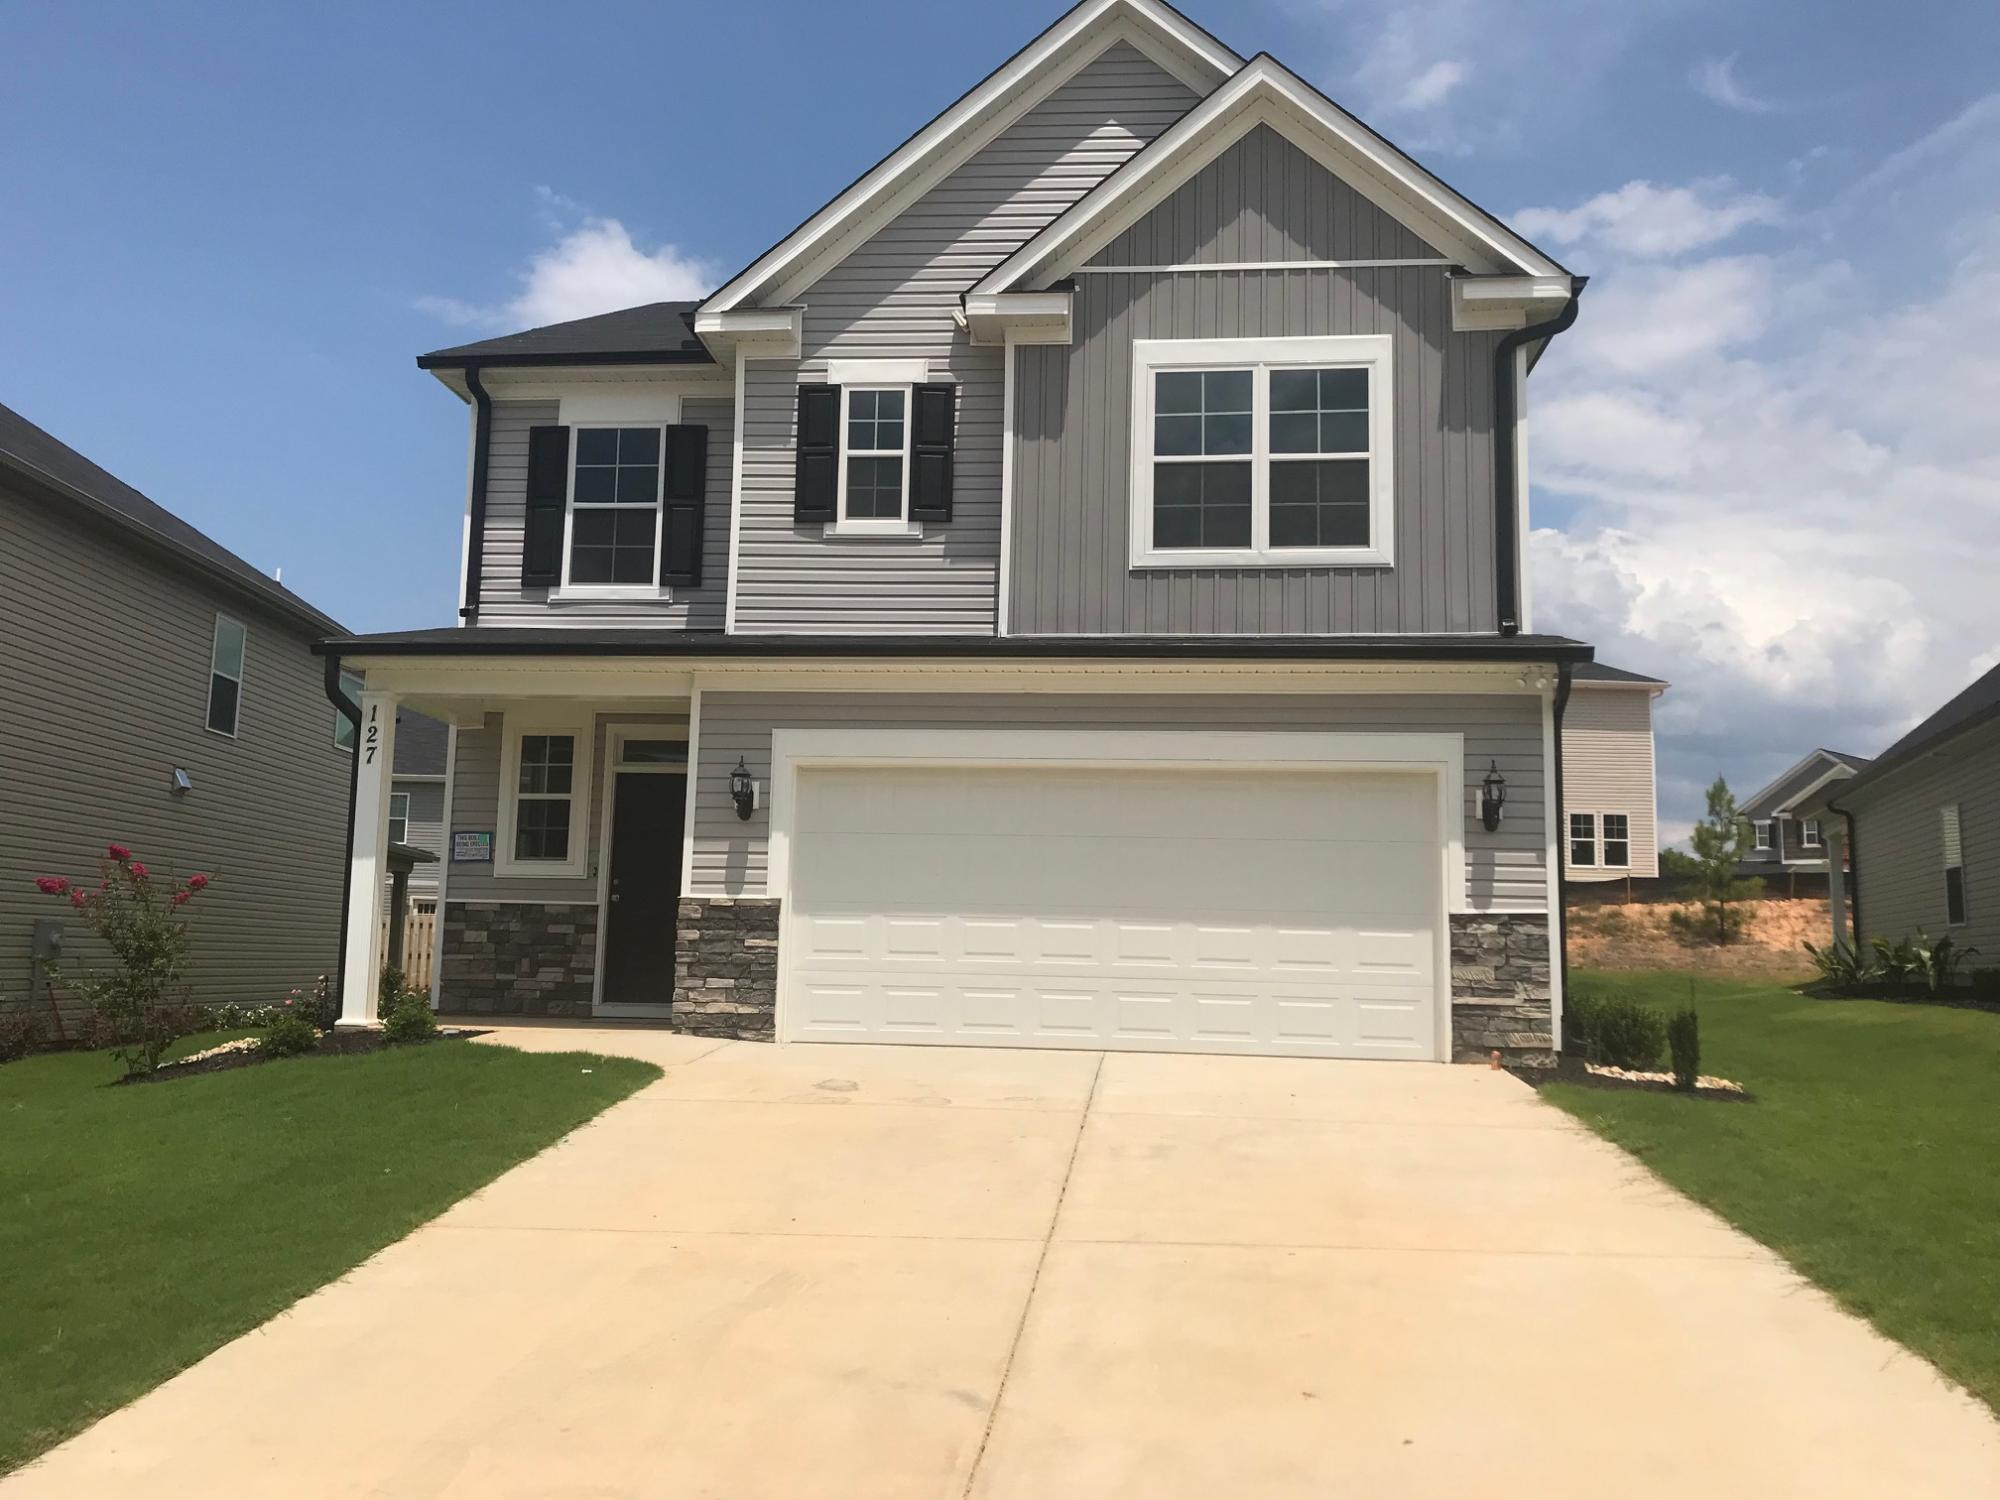 New Construction Homes & Plans in Grovetown, GA | 637 Homes